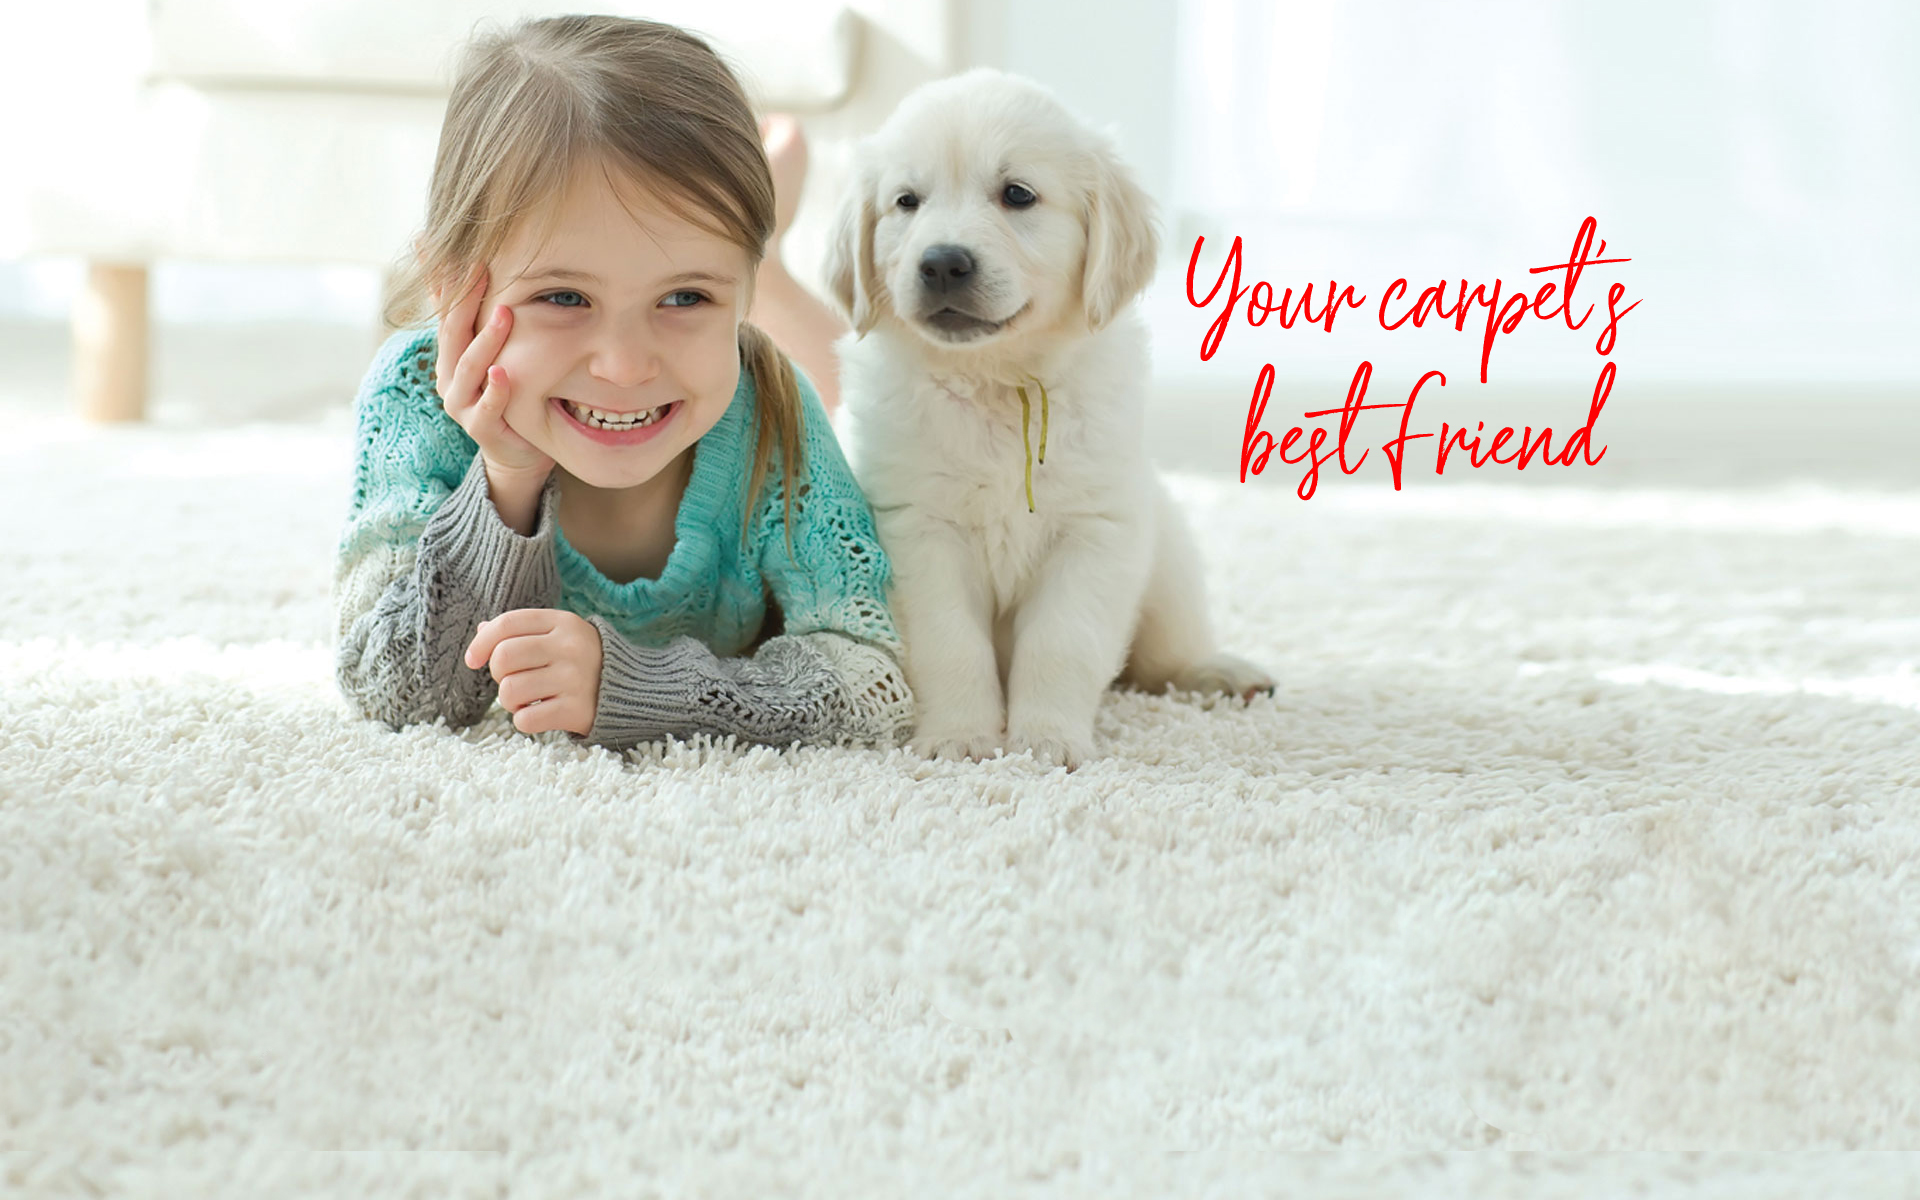 Your carpet's best friend